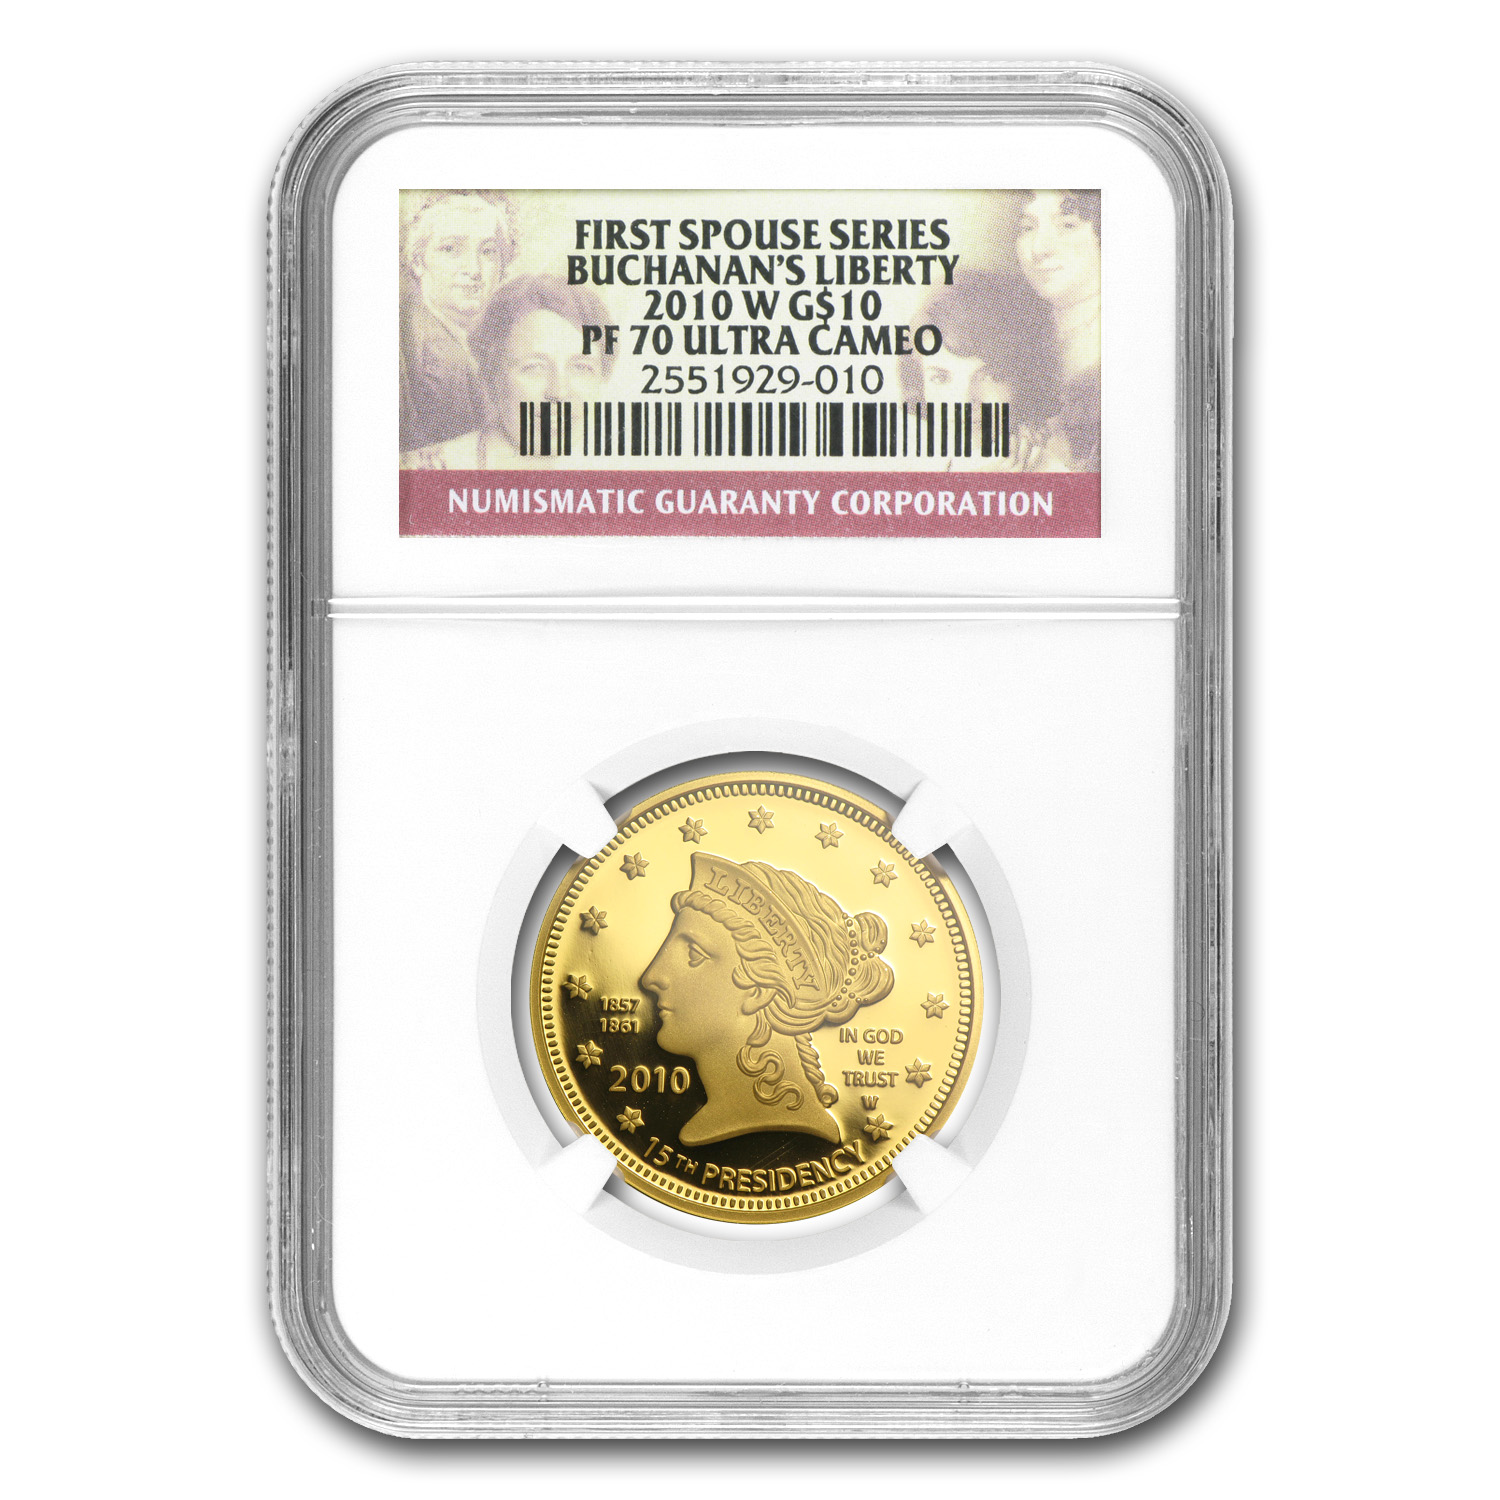 2010-W 1/2 oz Proof Gold Buchanan's Liberty PF-70 NGC UCAM